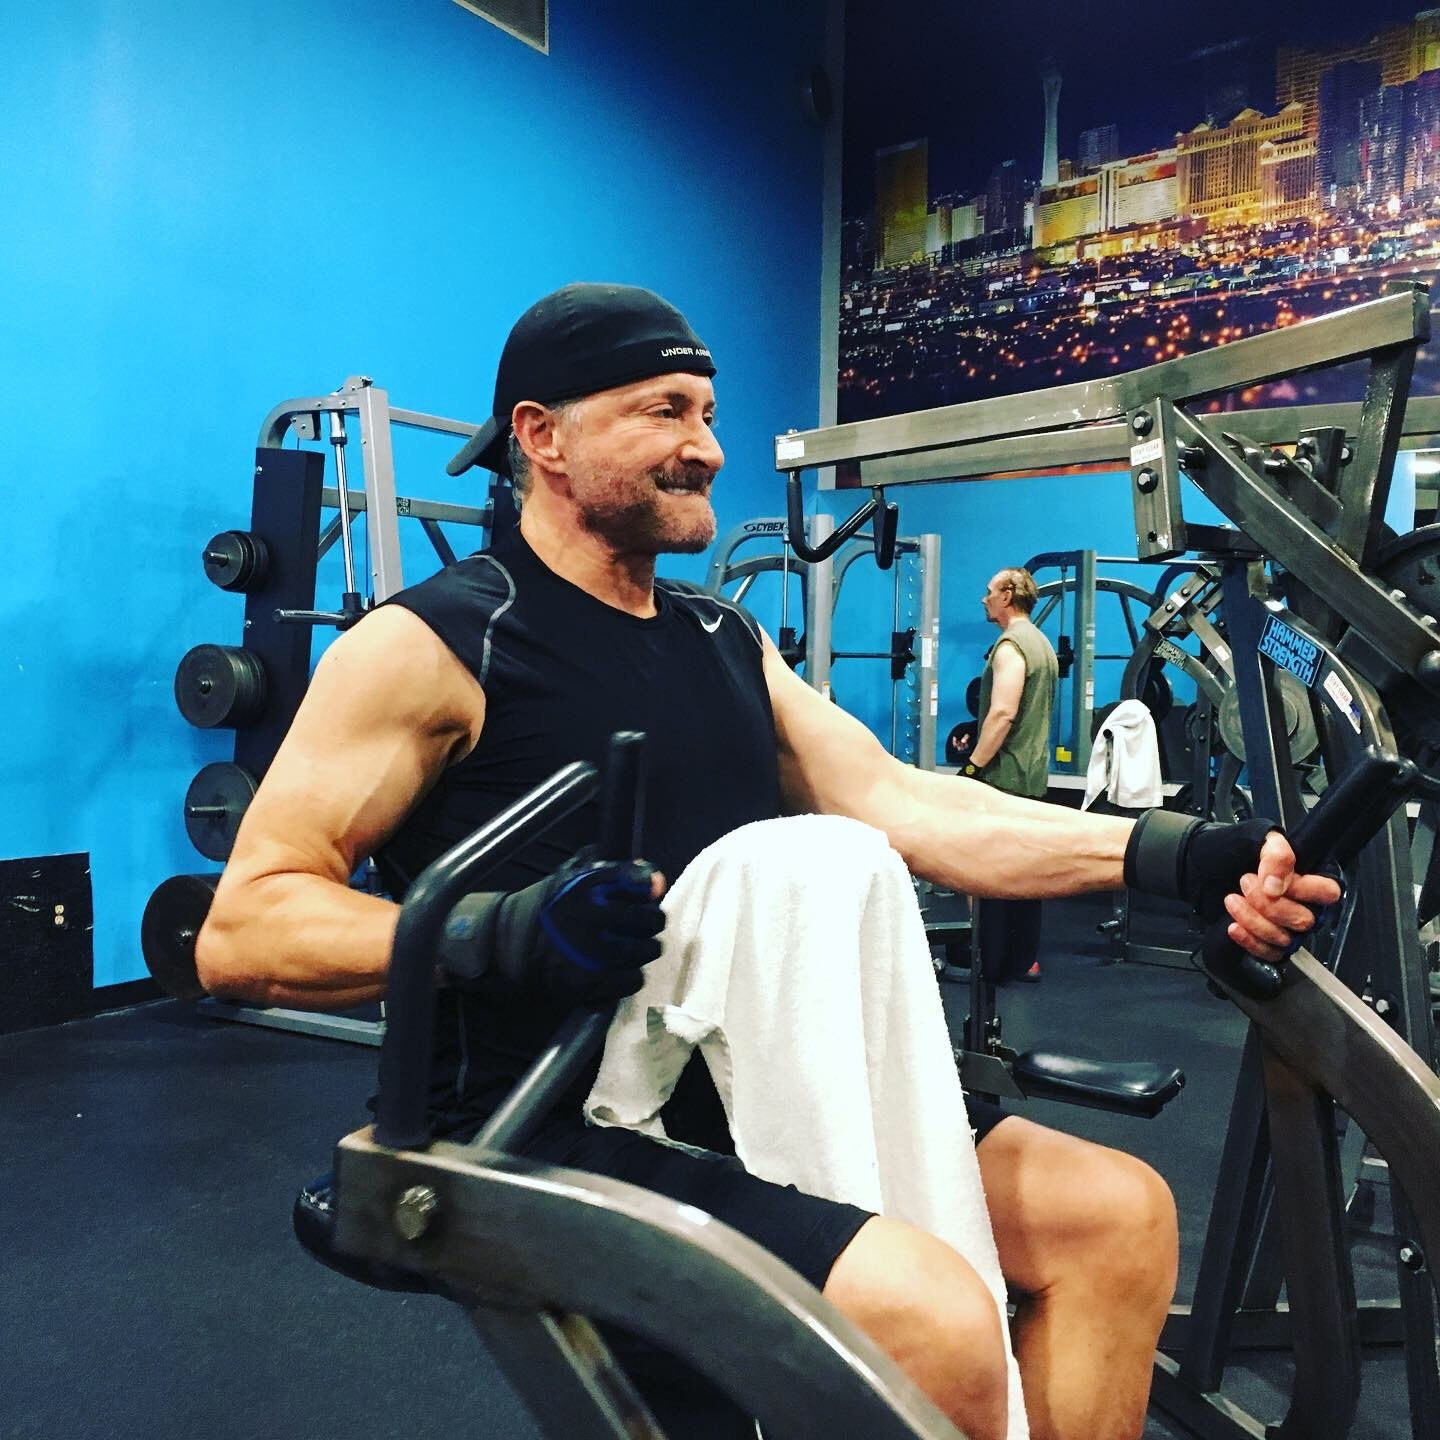 James arthur ray working out